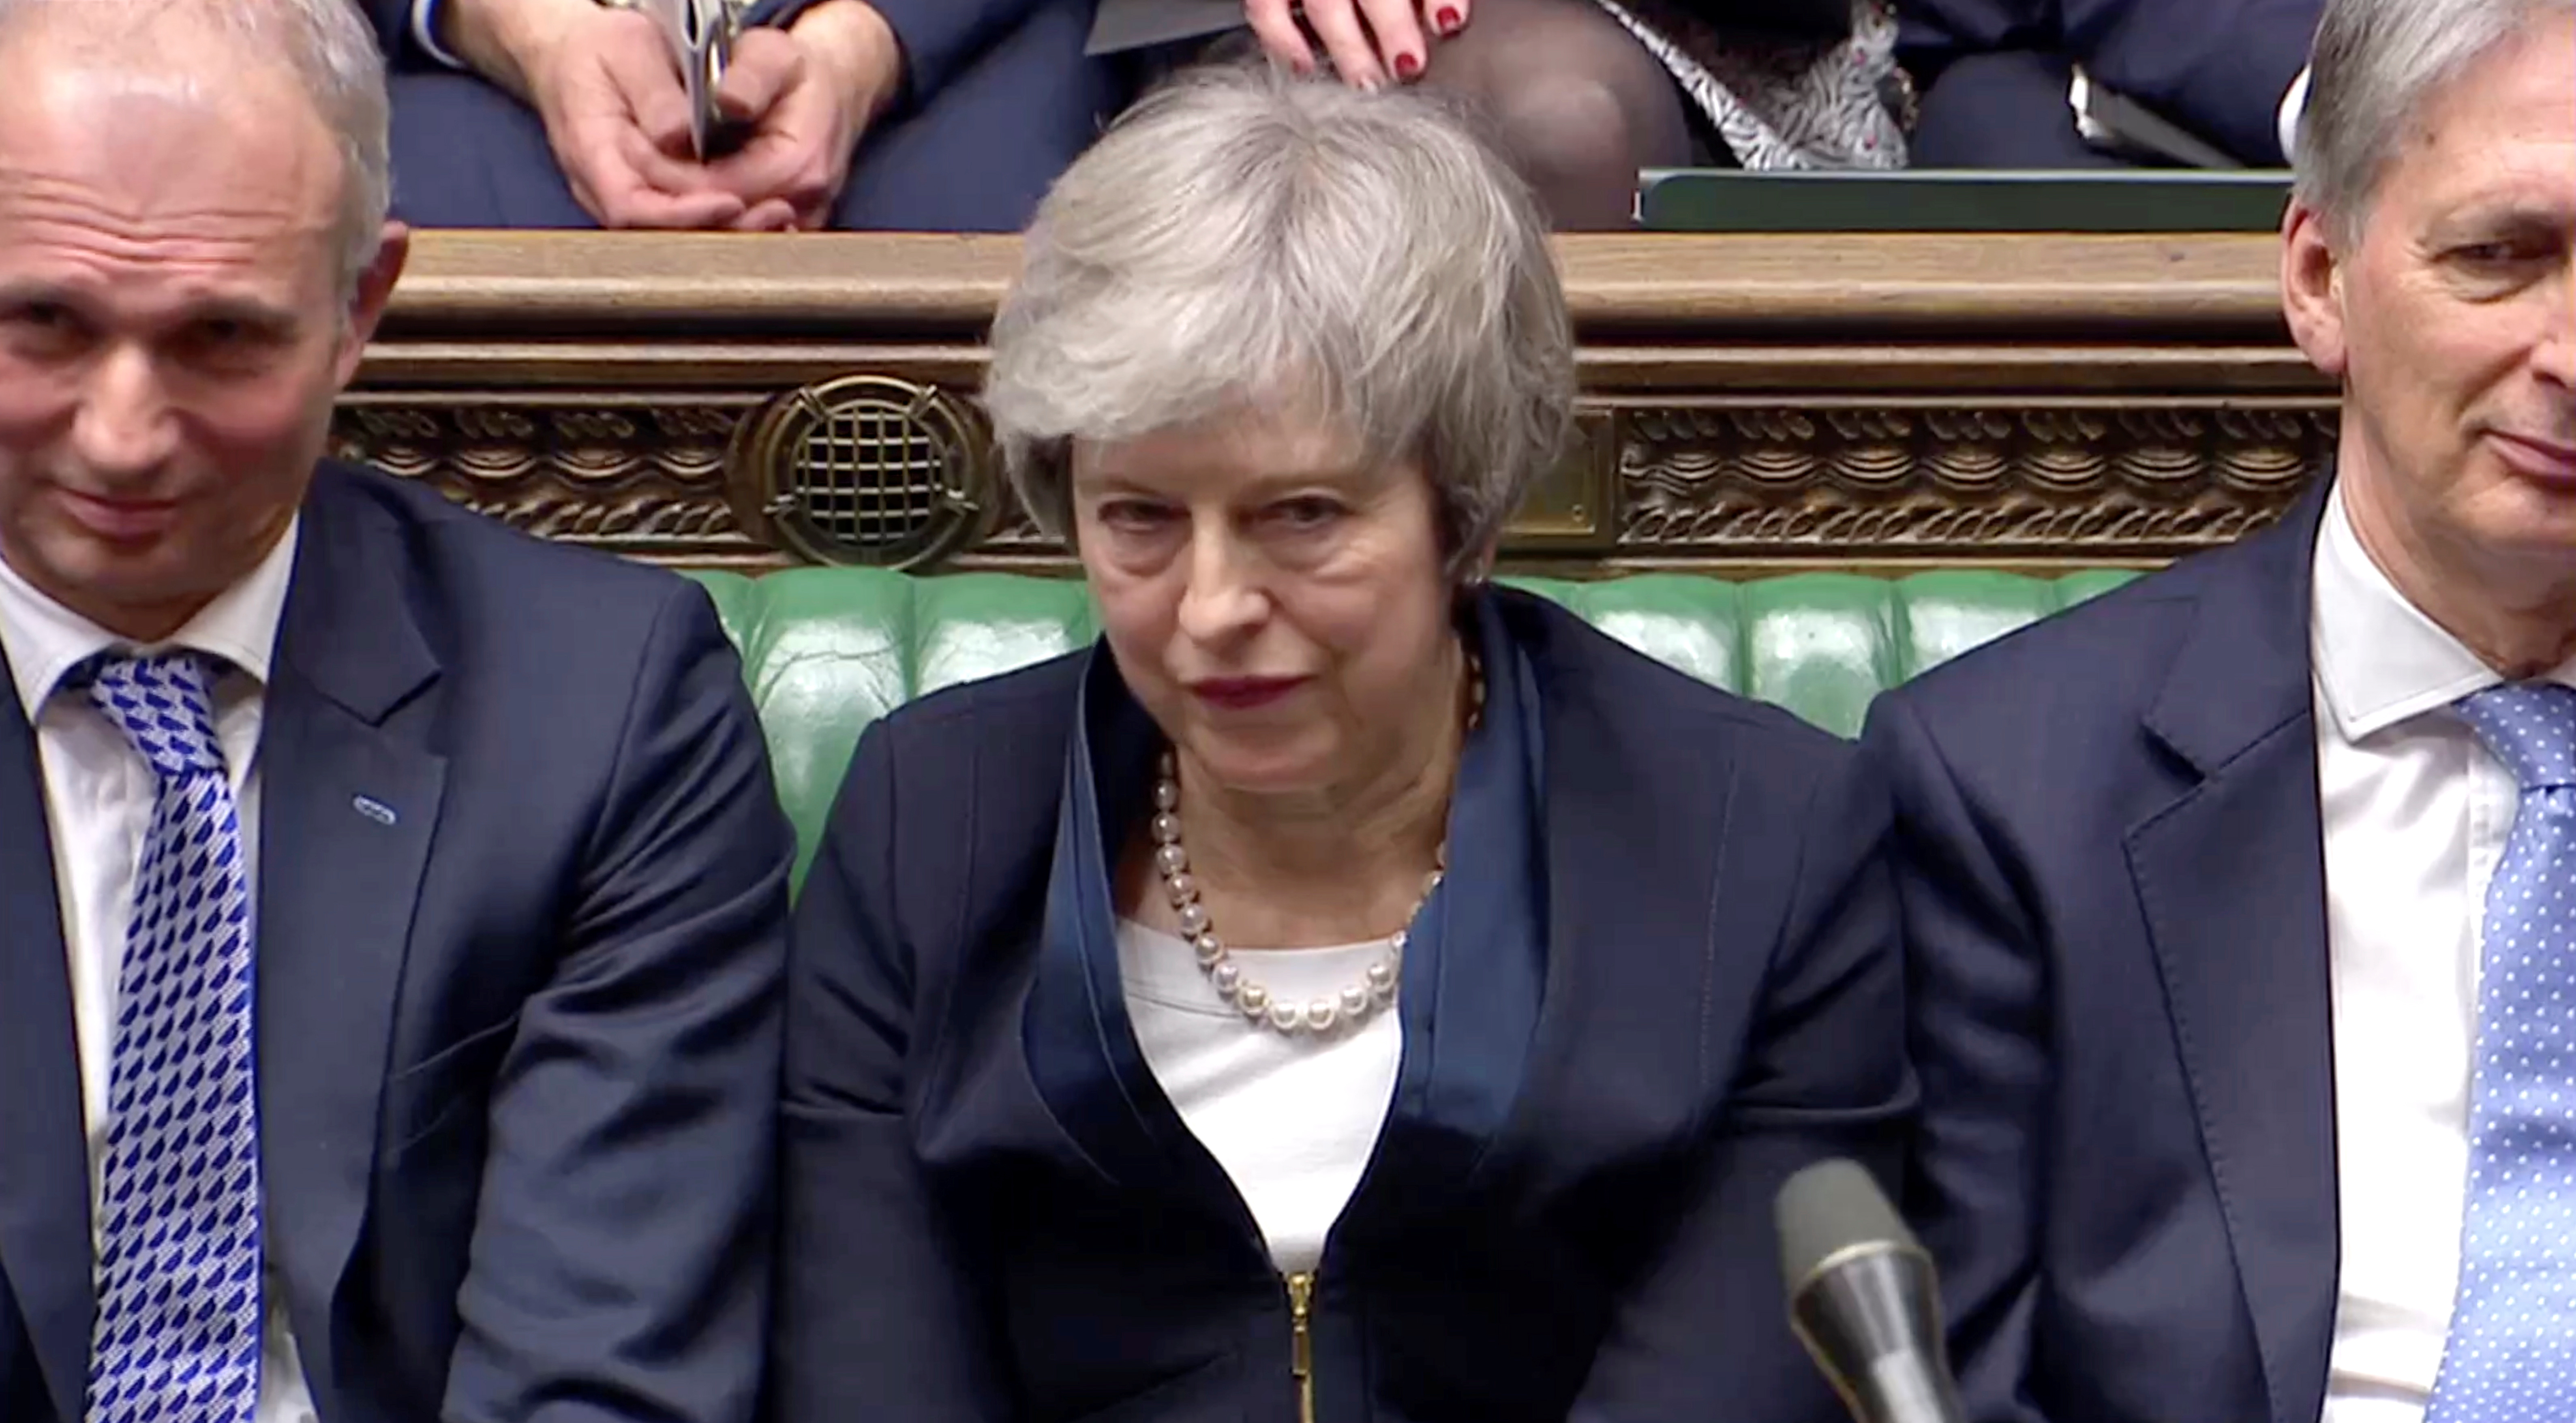 Prime Minister Theresa May sits down in Parliament after the vote on May's Brexit deal, in London, Britain, Jan. 15, 2019 in this image taken from video.